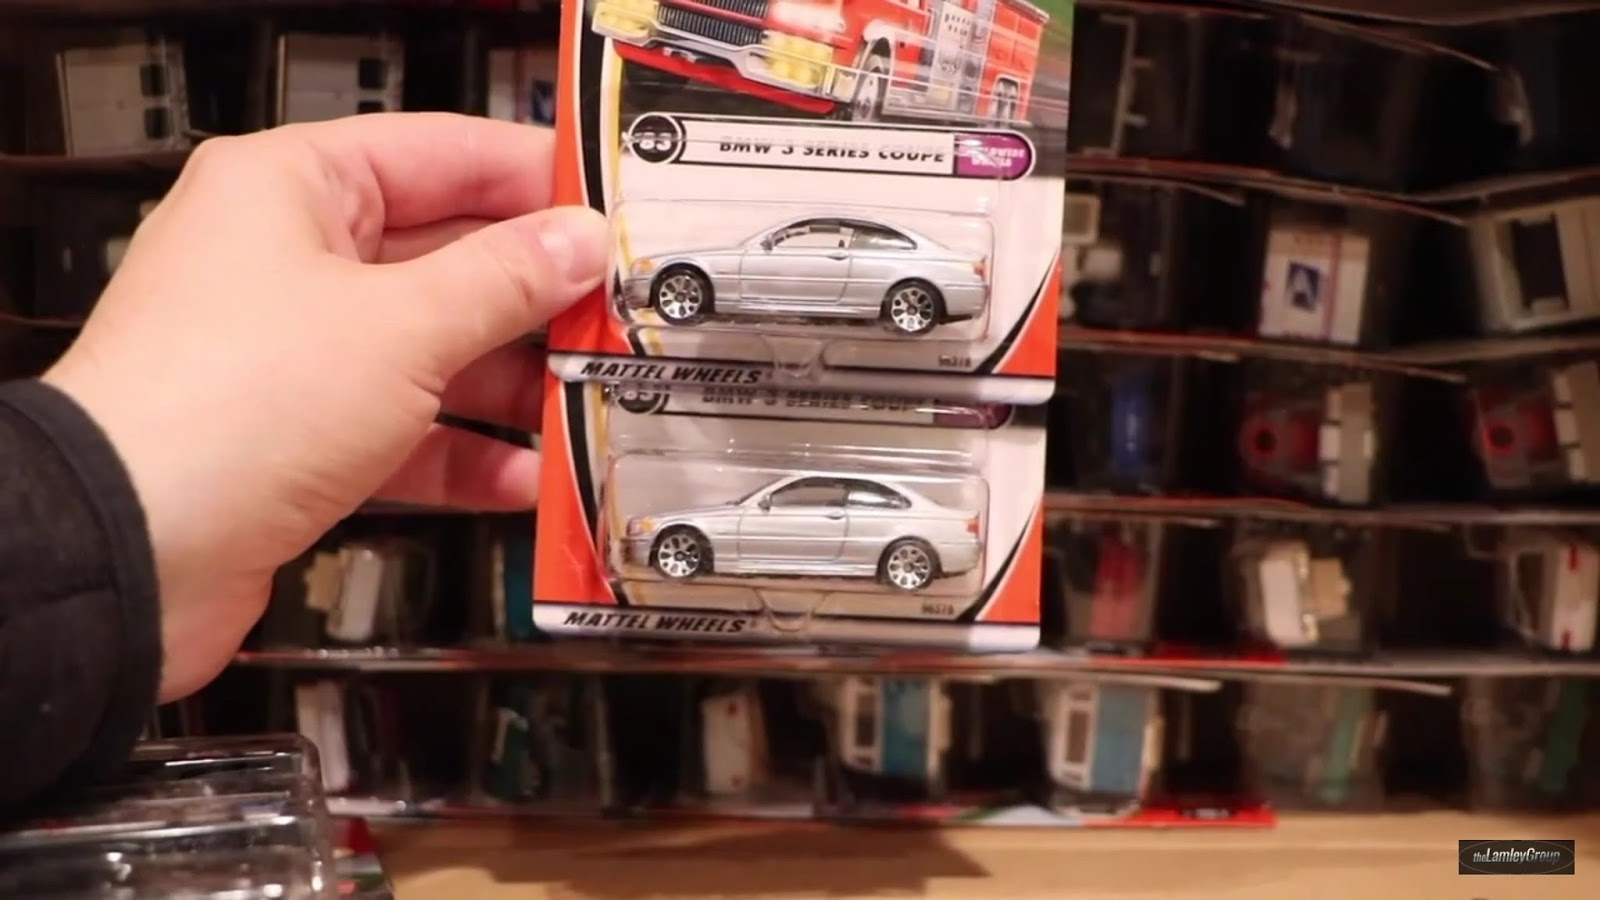 Case Report: Opening a 15-year-old Matchbox 72-count case